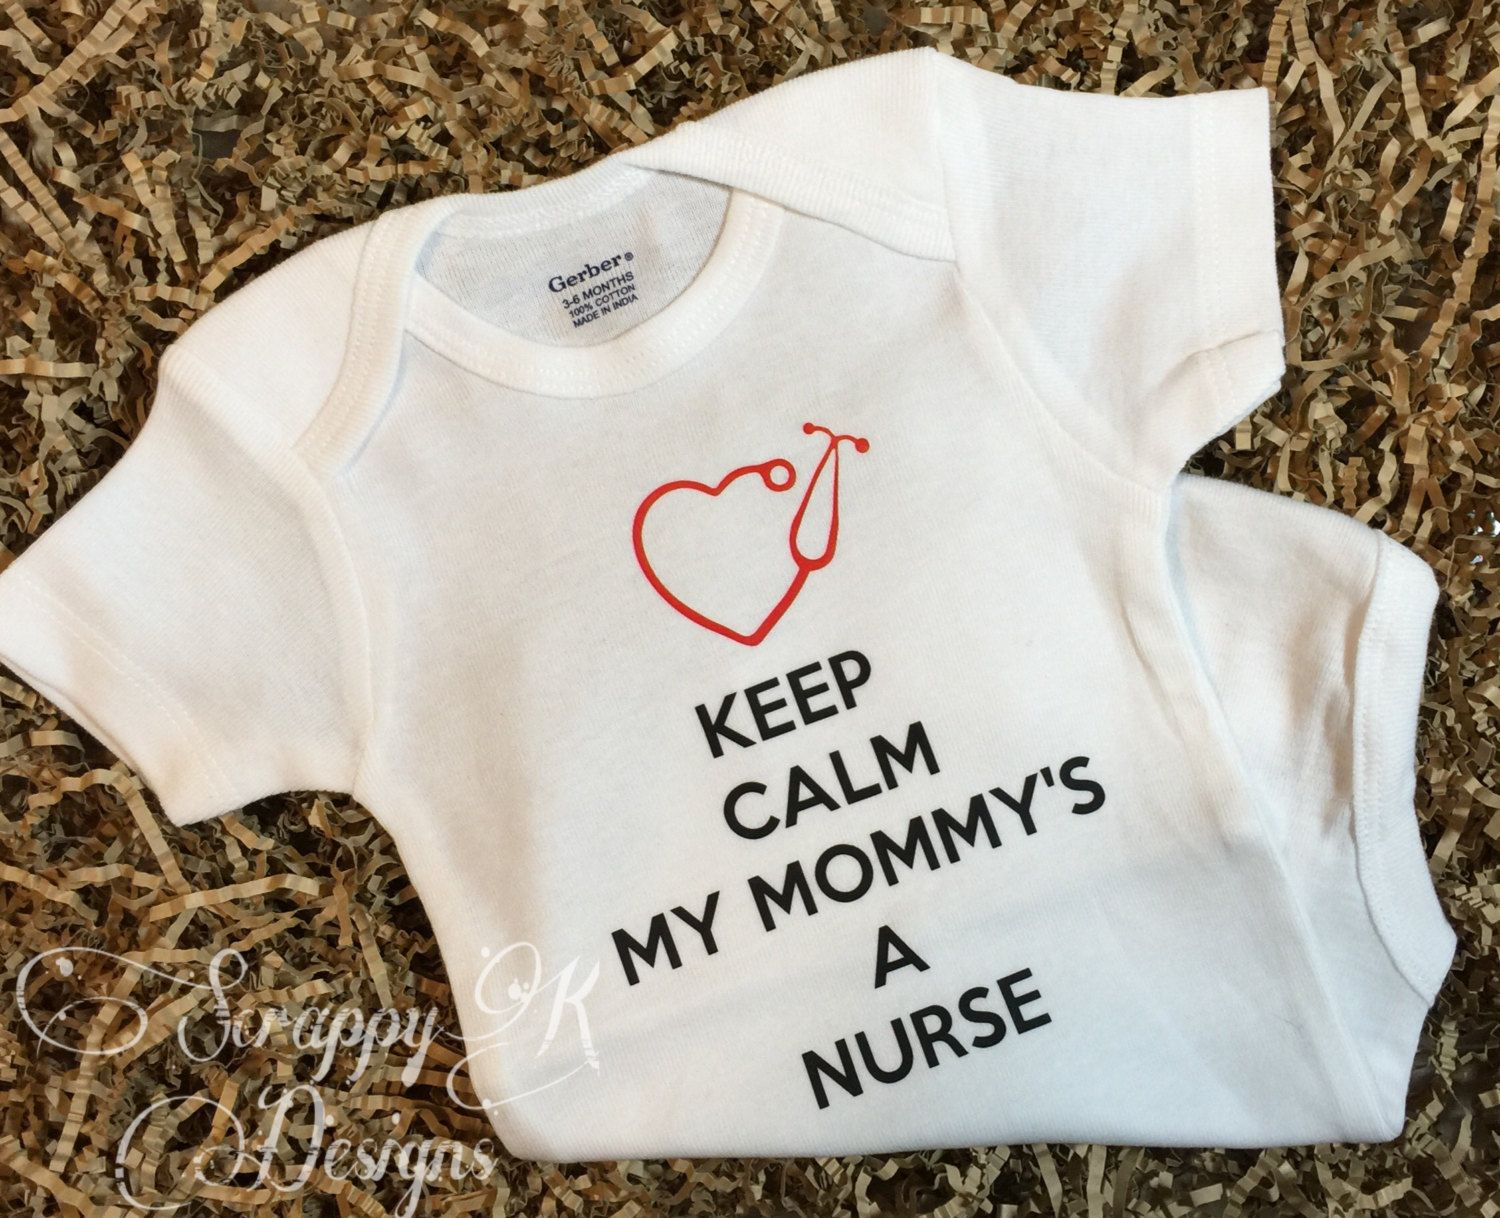 Clothing & Accessories Baby Gifts For All Keep Calm My Mom is a Nurse Baby Bib